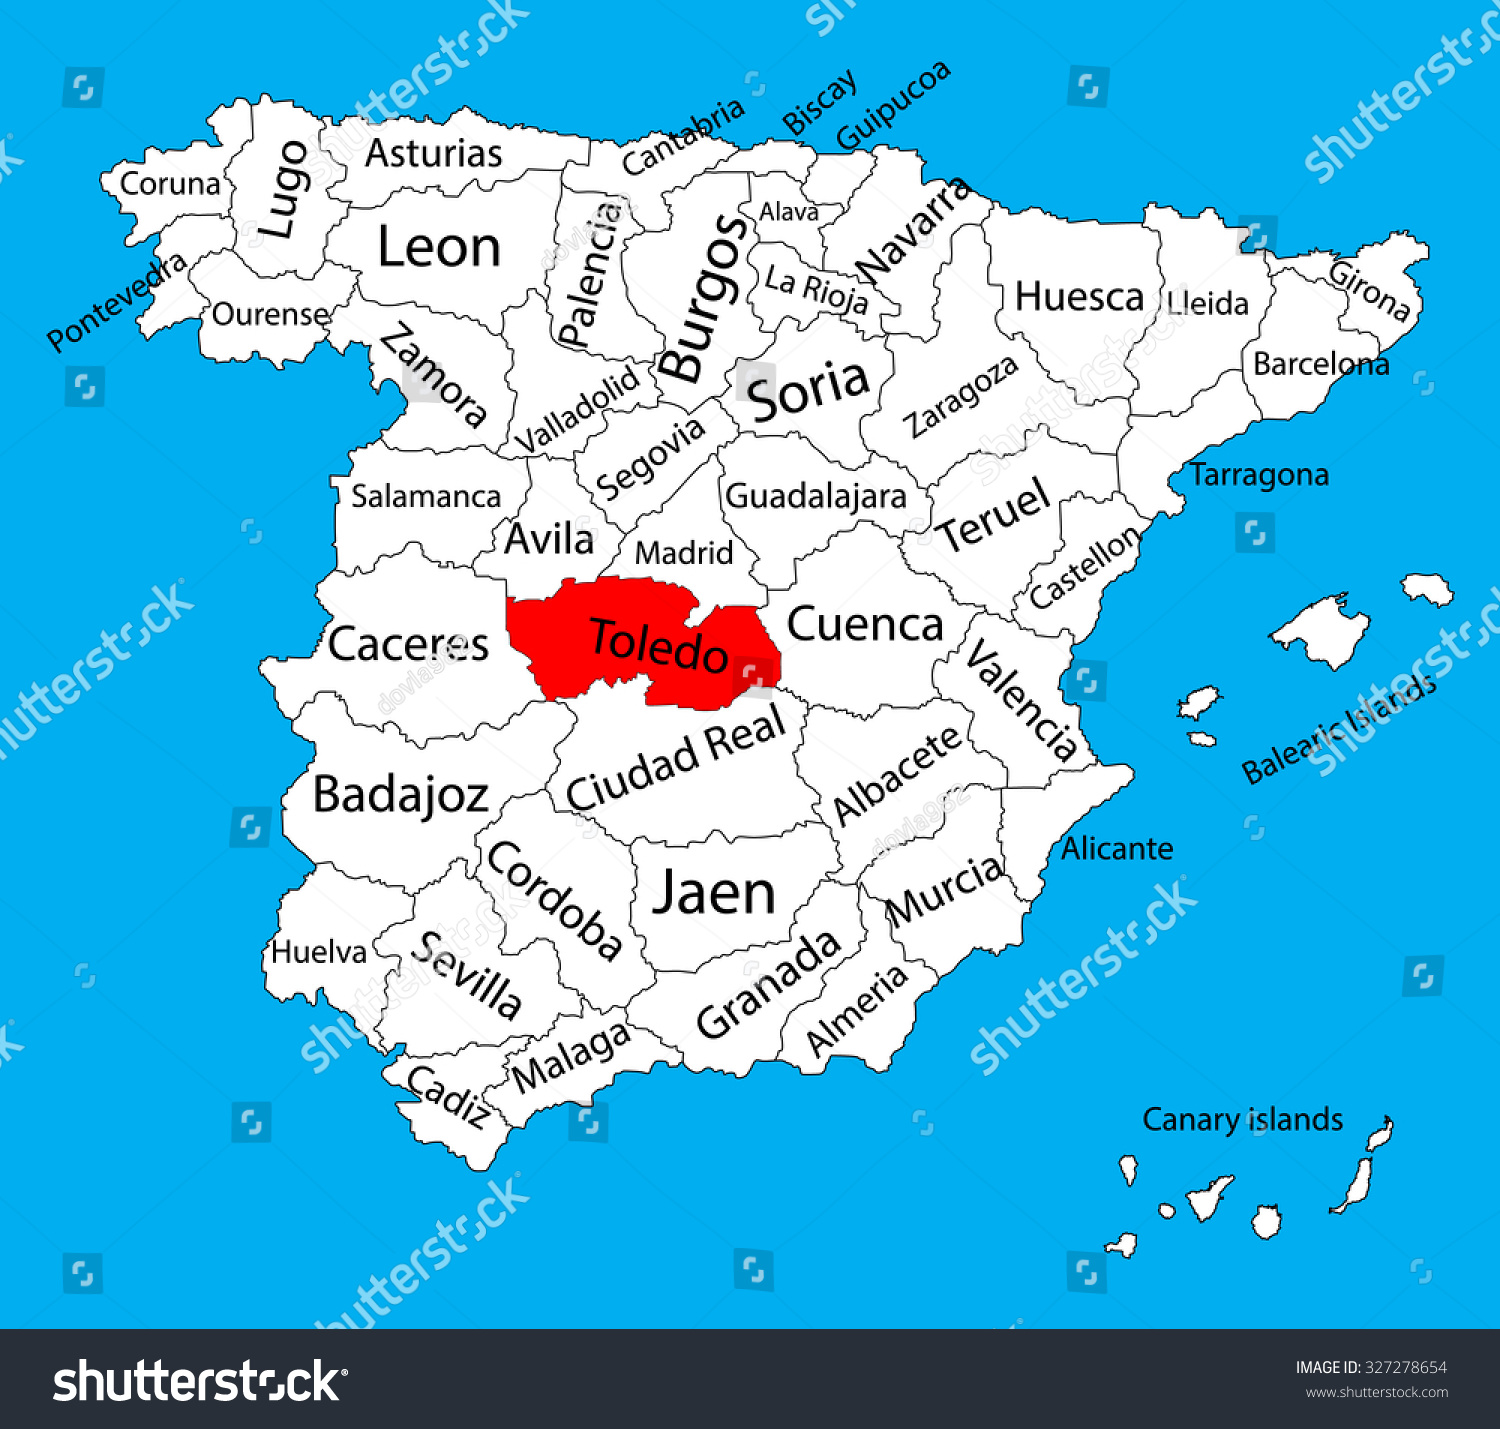 Toledo Map Spain Province Vector Map Stock Vector (Royalty Free